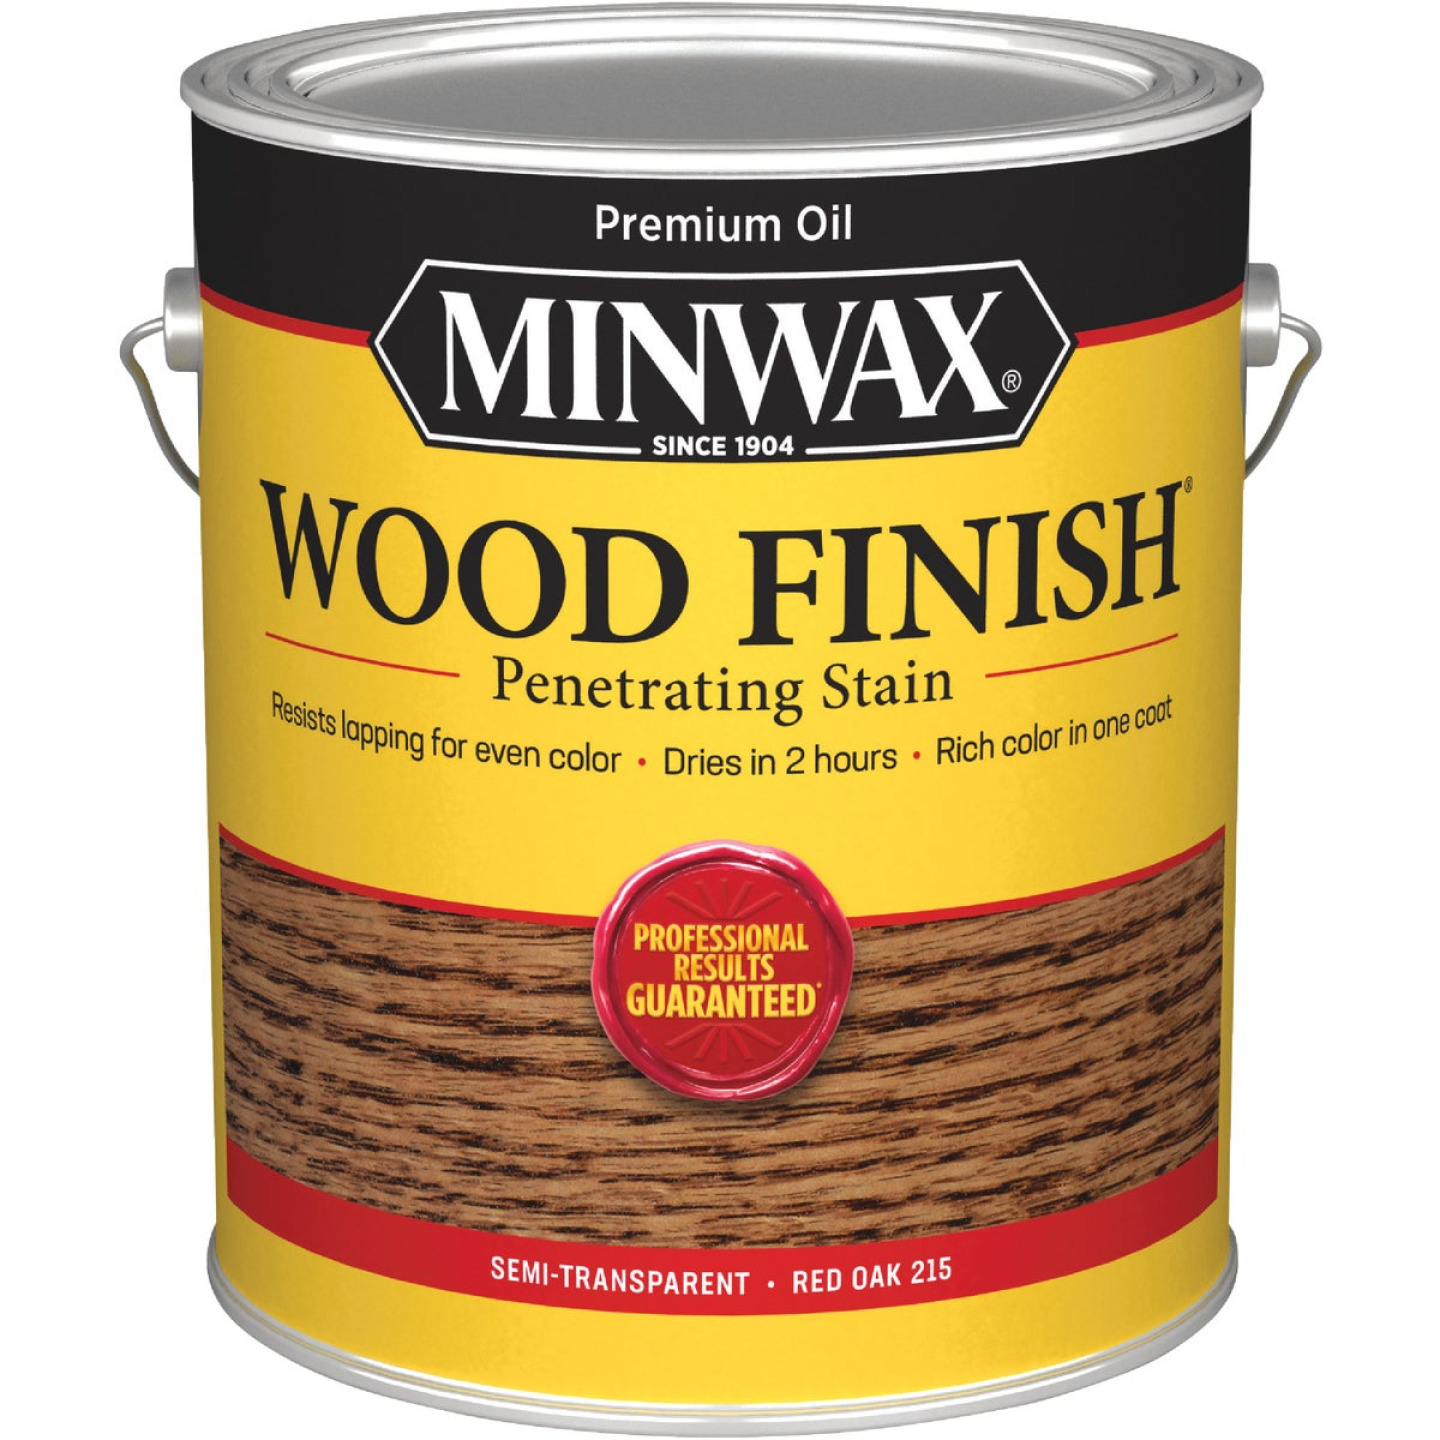 Minwax Wood Finish Penetrating Stain, Red Oak, 1 Gal. Image 1